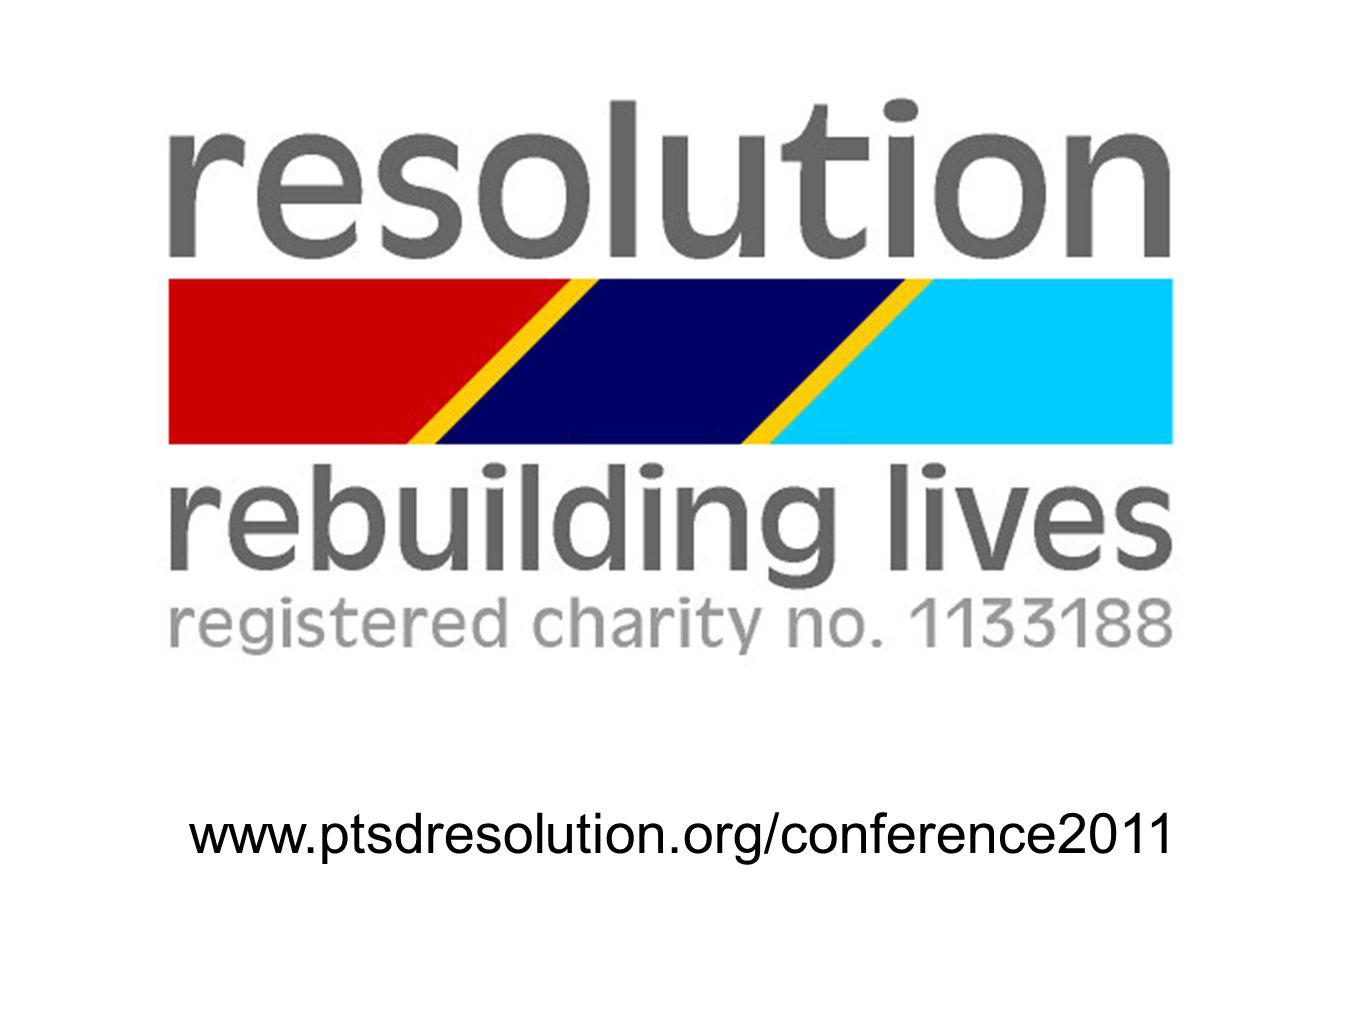 www.ptsdresolution.org/conference2011